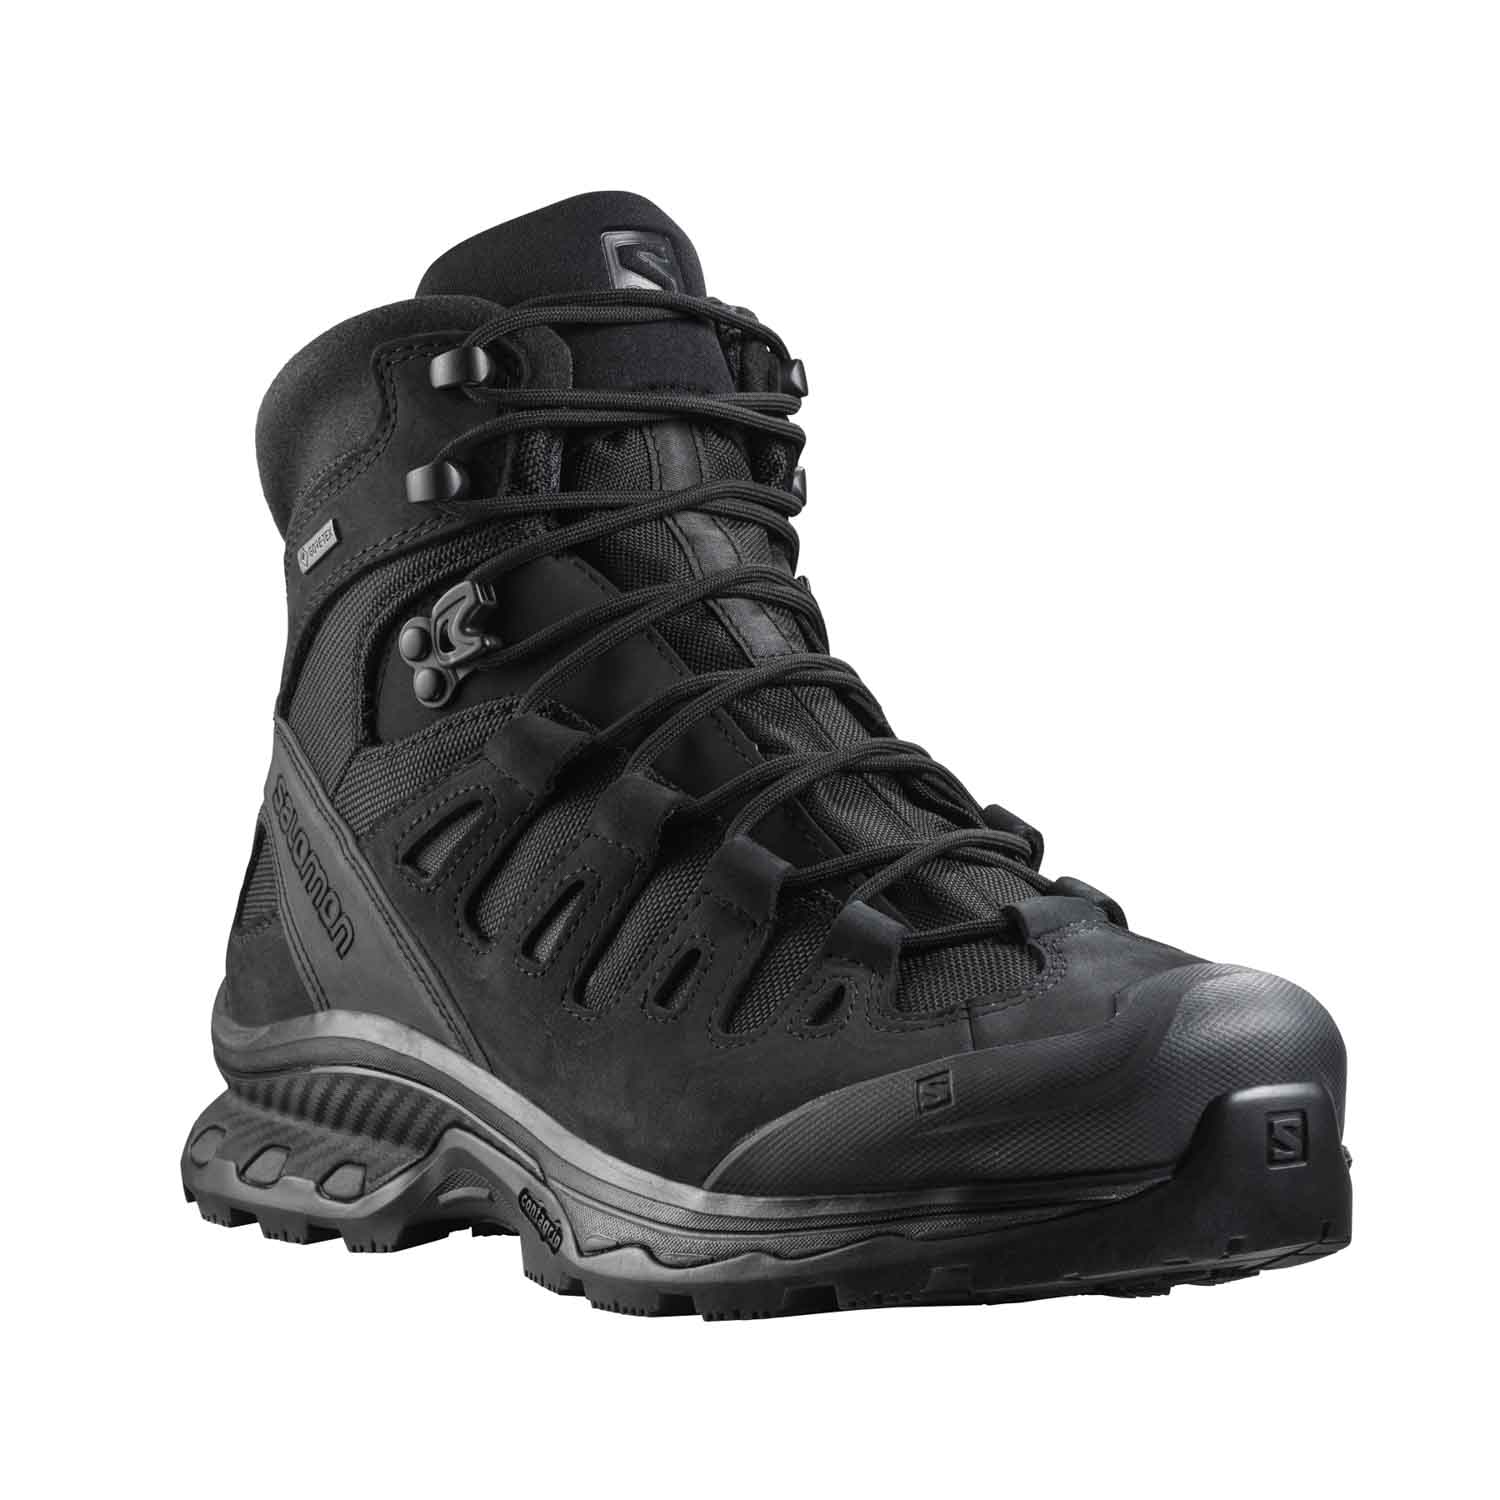 22421c611ea Salomon Quest 4D GTX Forces 2 Waterproof Tactical Boot.